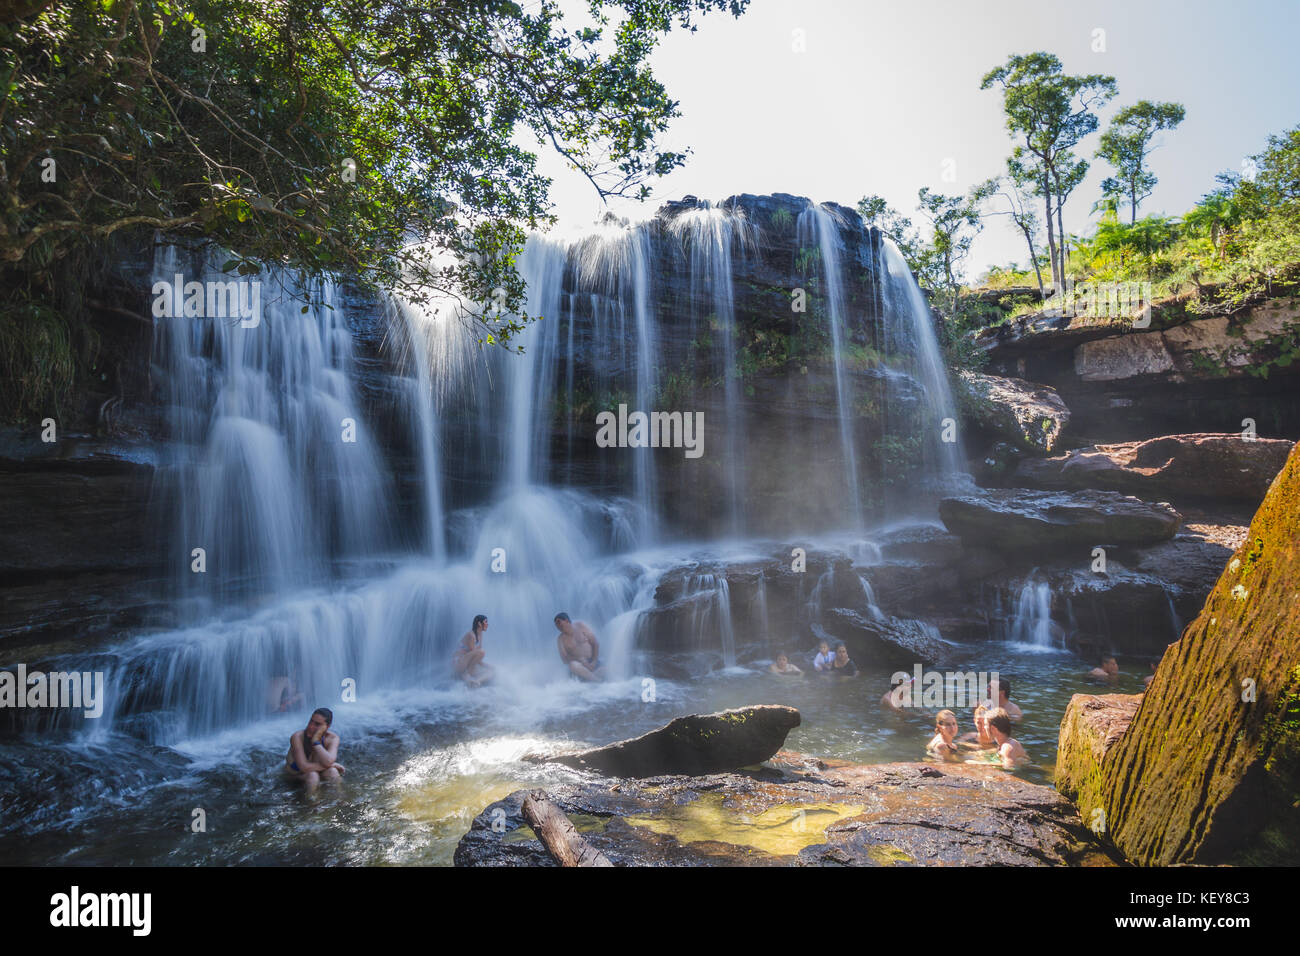 Waterfall in Caño Cristales - Stock Image